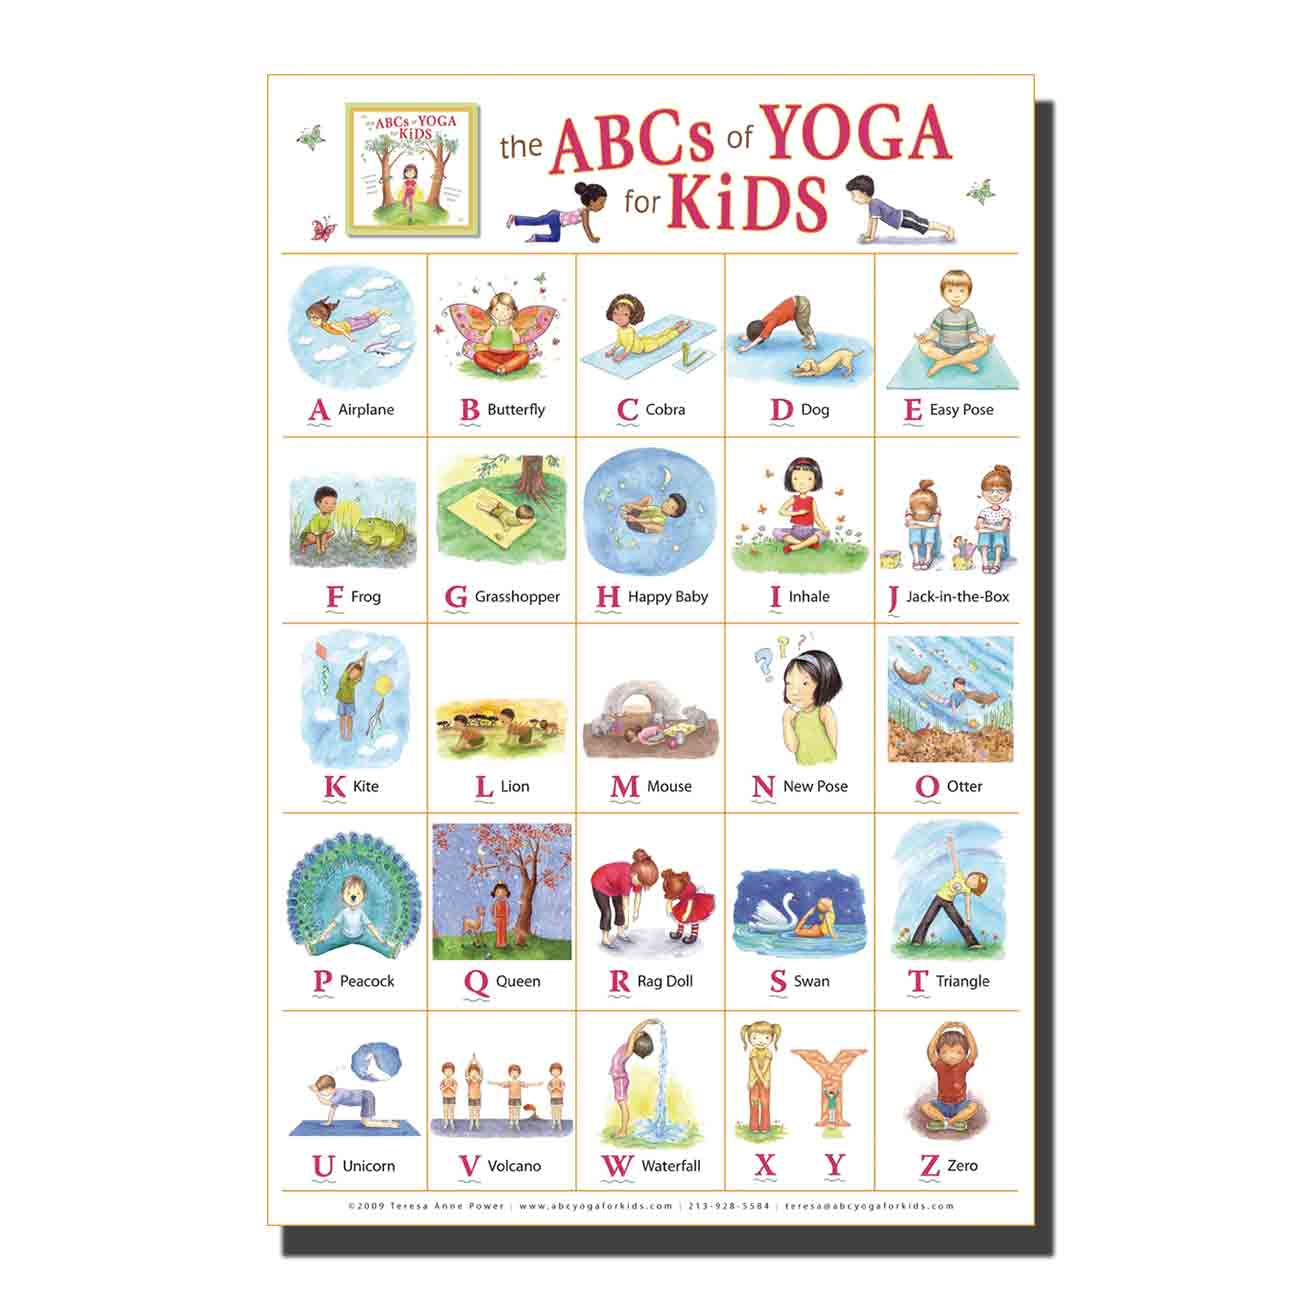 US $338.338 38% OFFMy ABC Alphabet Yoga Pose Learning Table Kids Children Art  Poster custom Home Wall decor 1338x138 3384x38canvas living roomdecorWall